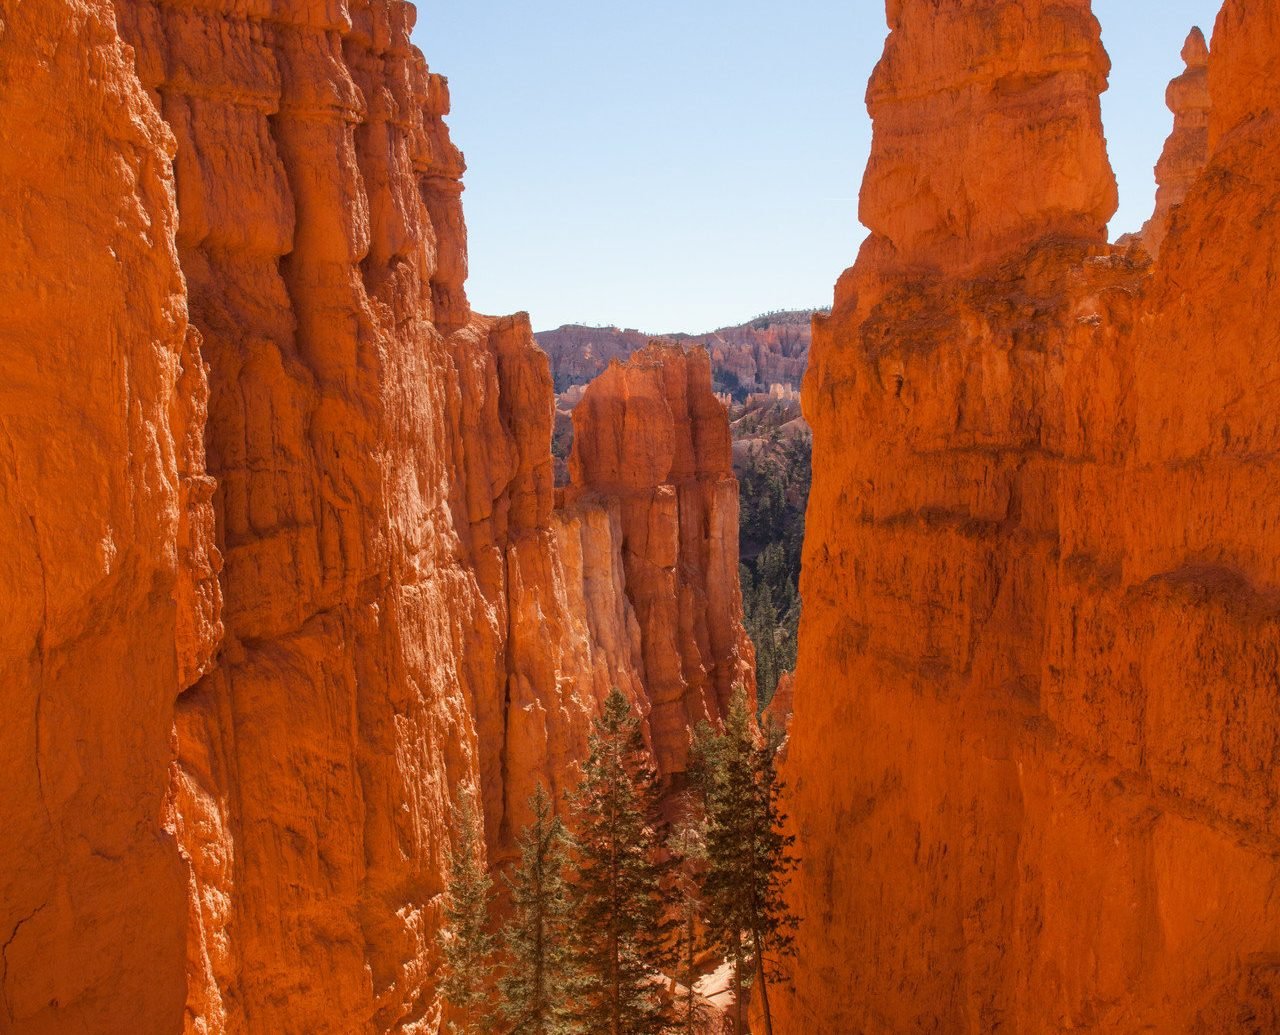 National Parks Outdoors + Adventure Solo Travel Trip Ideas valley canyon Nature outdoor mountain landform geographical feature natural environment rock arch wadi butte badlands geology landscape Desert formation national park terrain